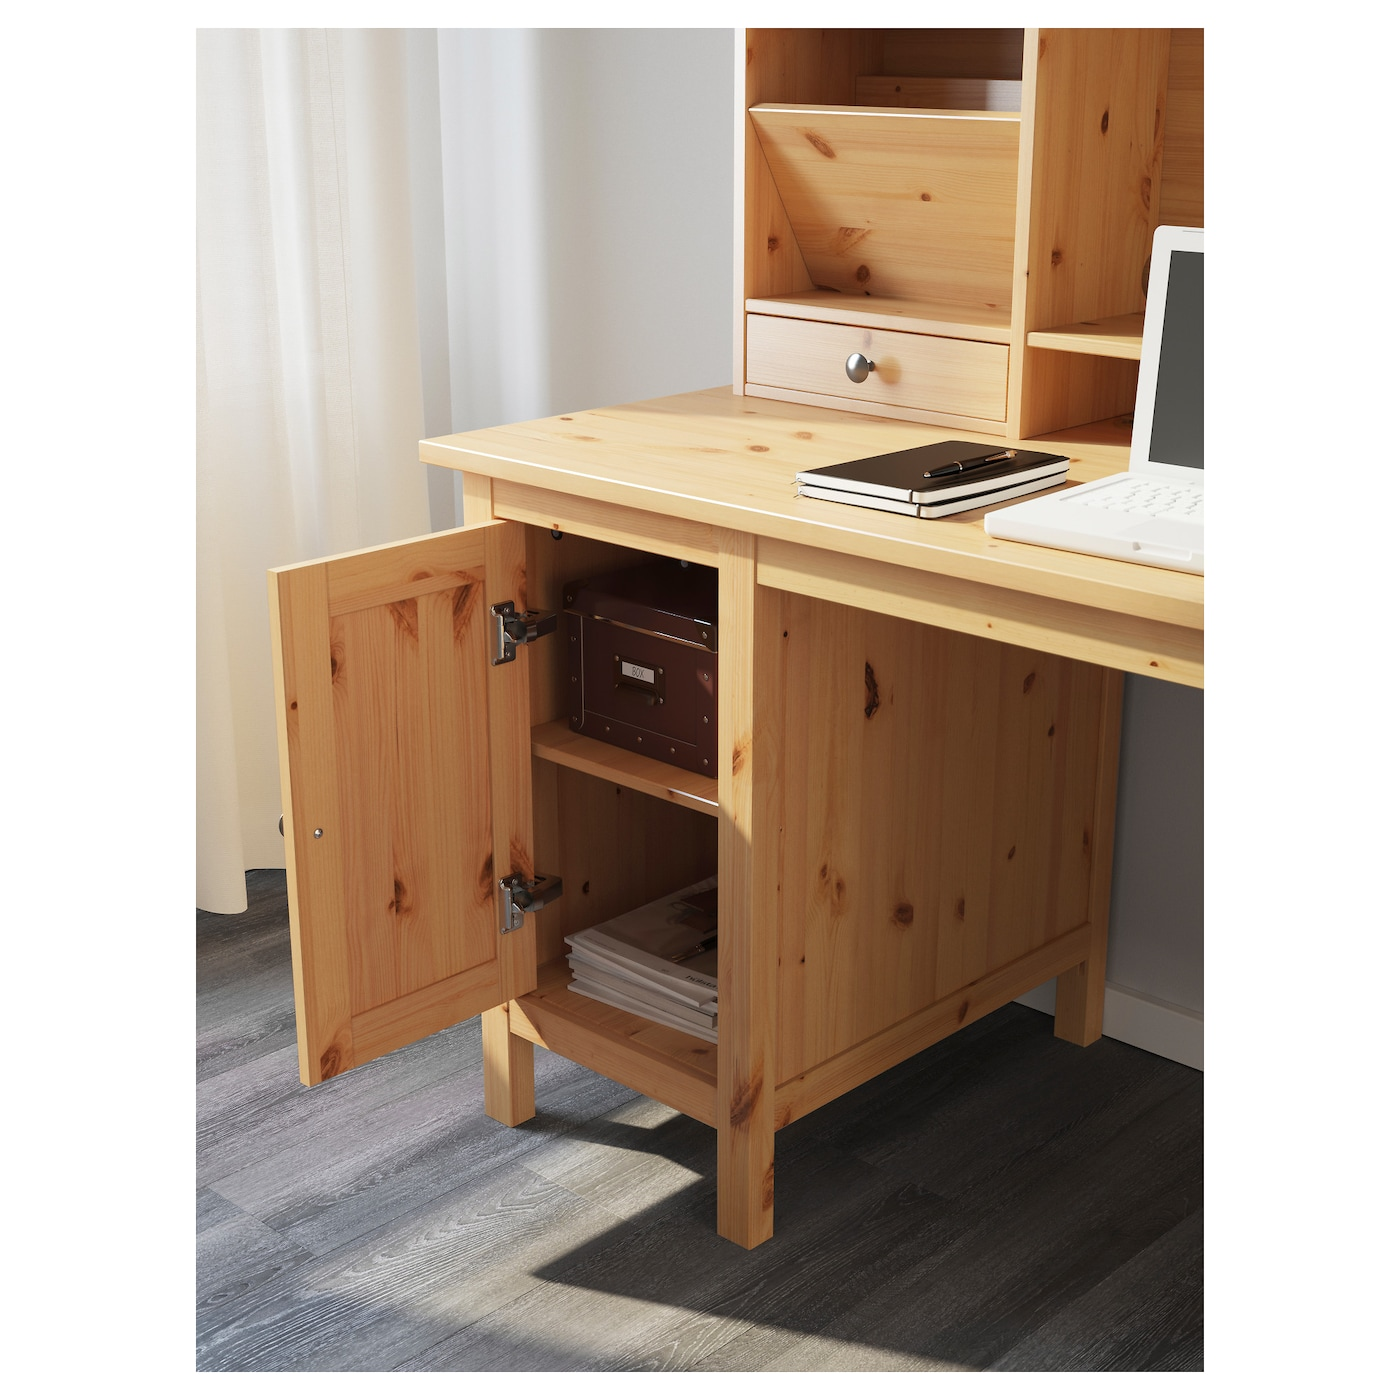 hemnes bureau met opbouwdeel lichtbruin 155x137 cm ikea. Black Bedroom Furniture Sets. Home Design Ideas